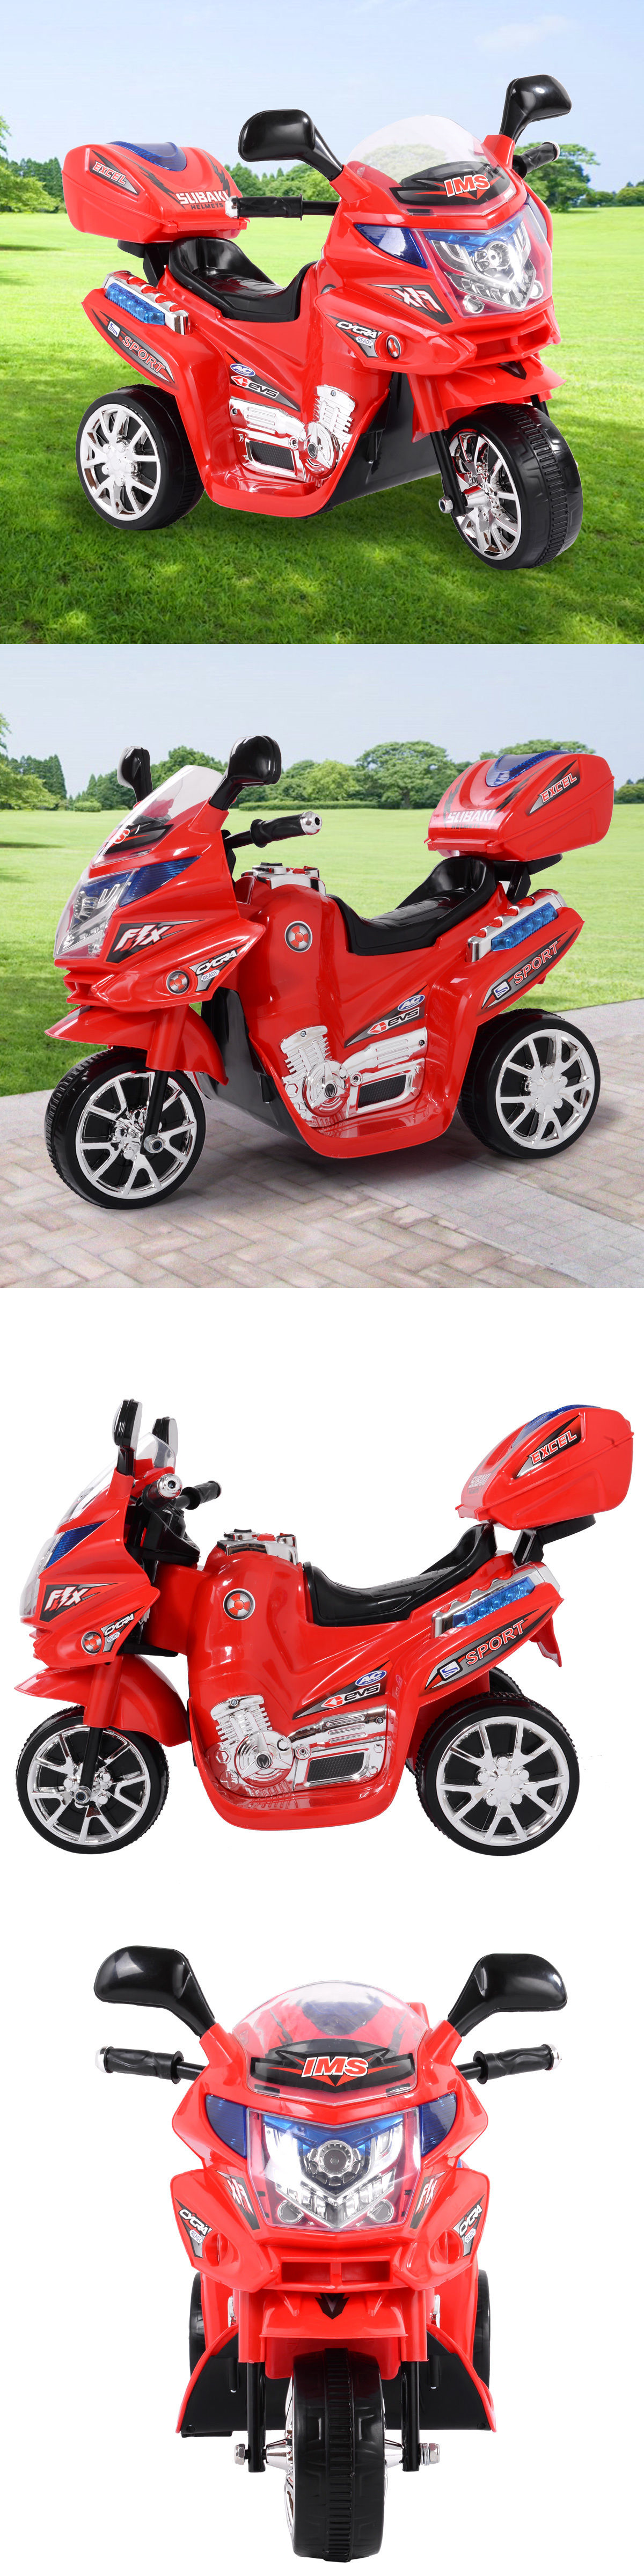 Toys car battery  Ride On Toys and Accessories   Wheels Power Motorcycle